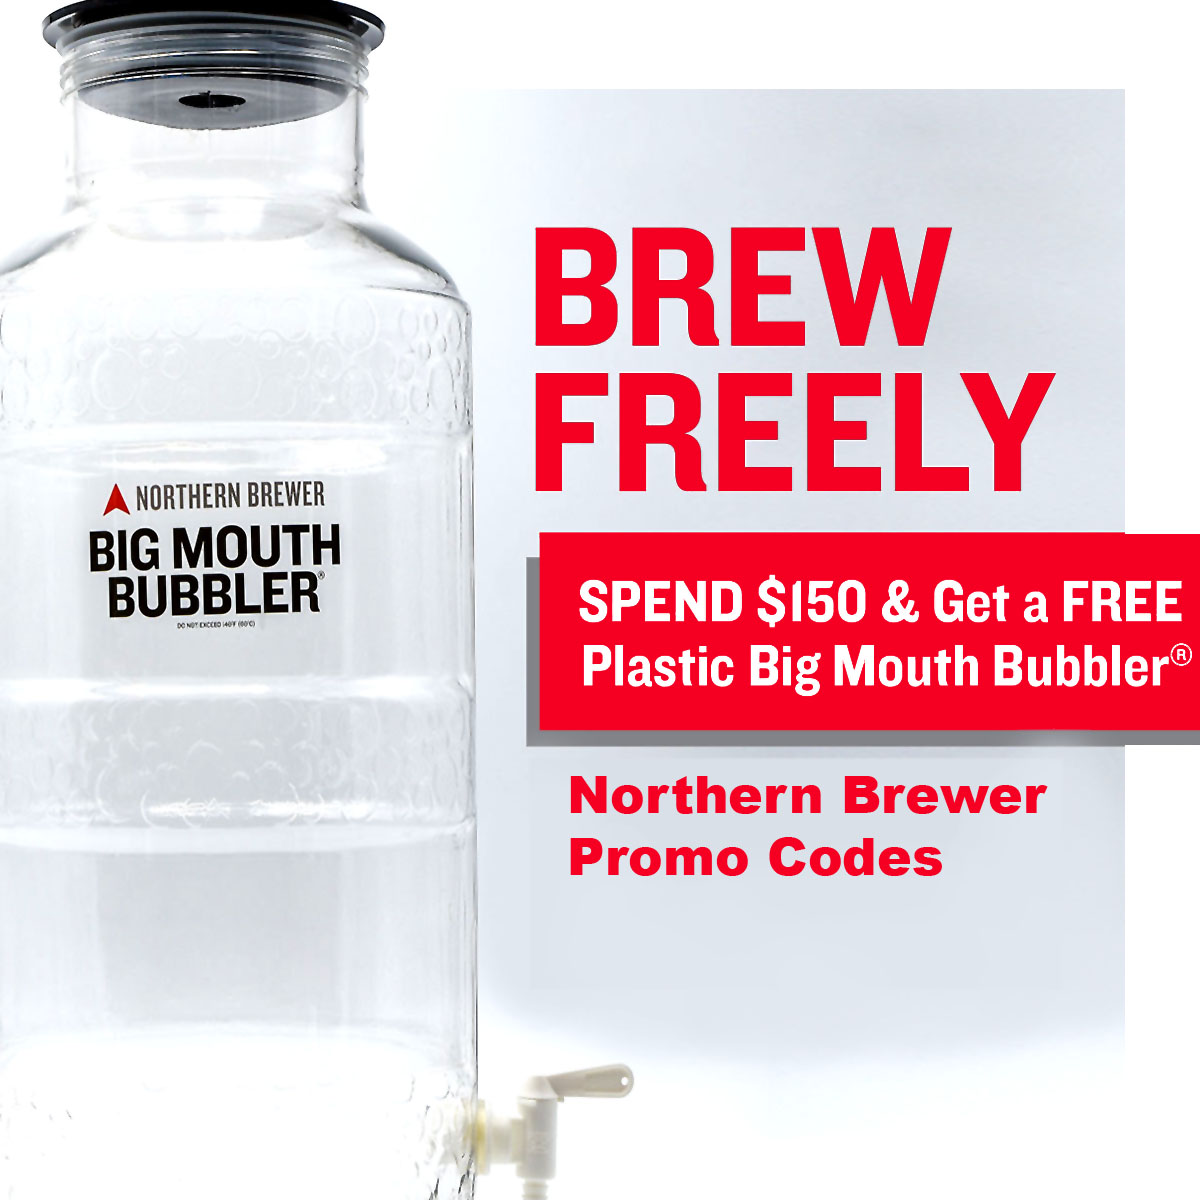 Home Wine Making Coupon Codes for Spend $150 and Get a FREE Big Mouth Fermenter Coupon Code For Northern Brewer Coupon Code